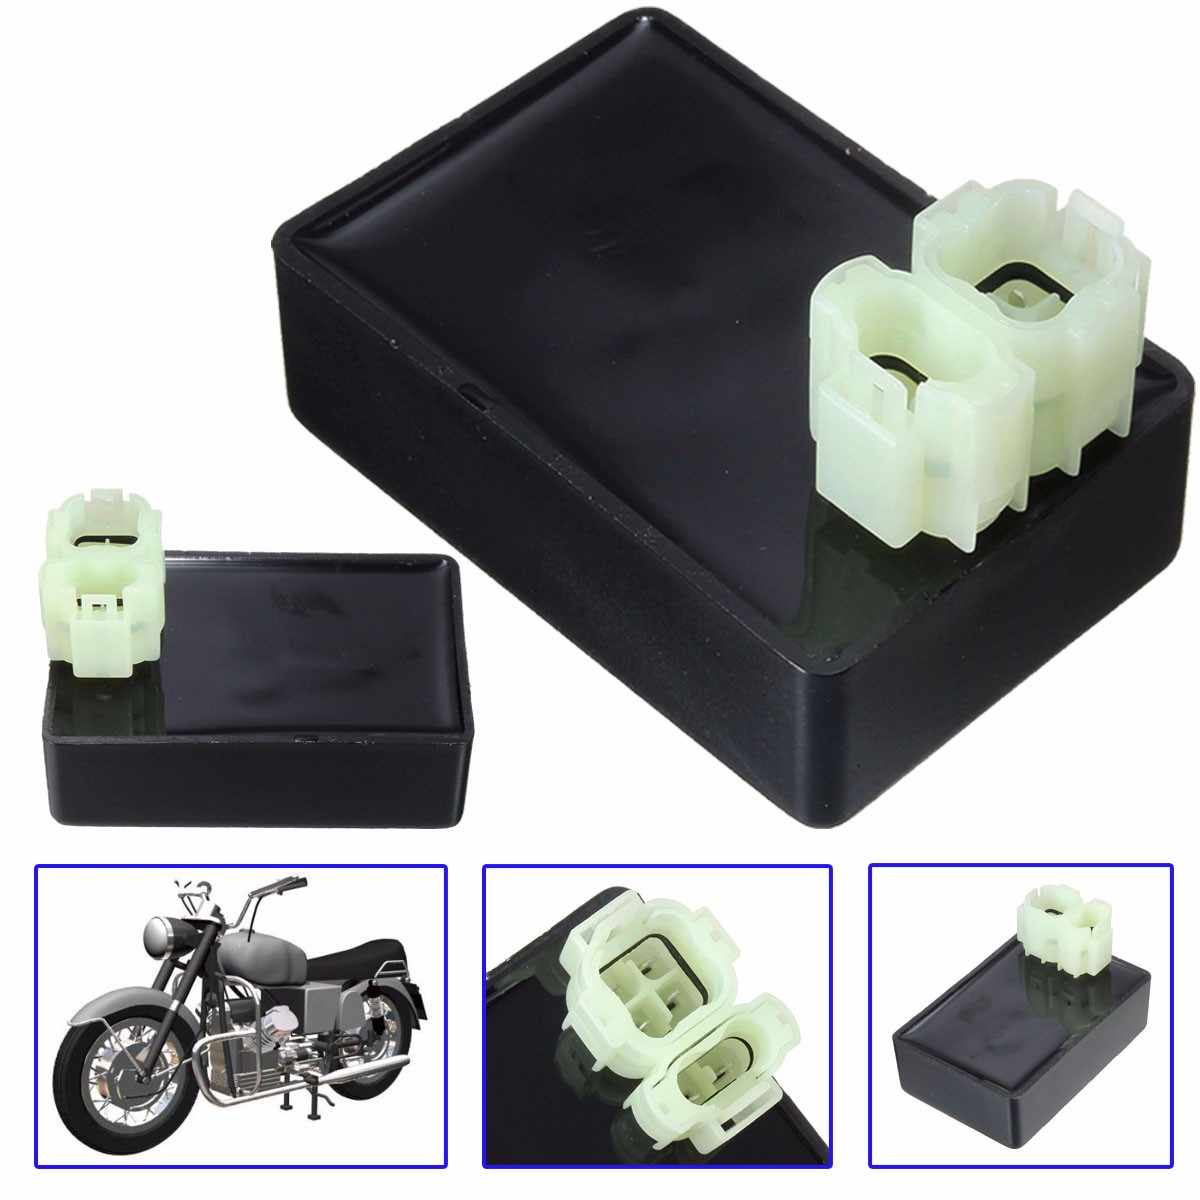 Kymco Agility 50cc 125cc DC CDI Direct Current CDI Rev Box Kymco Scooter Parts